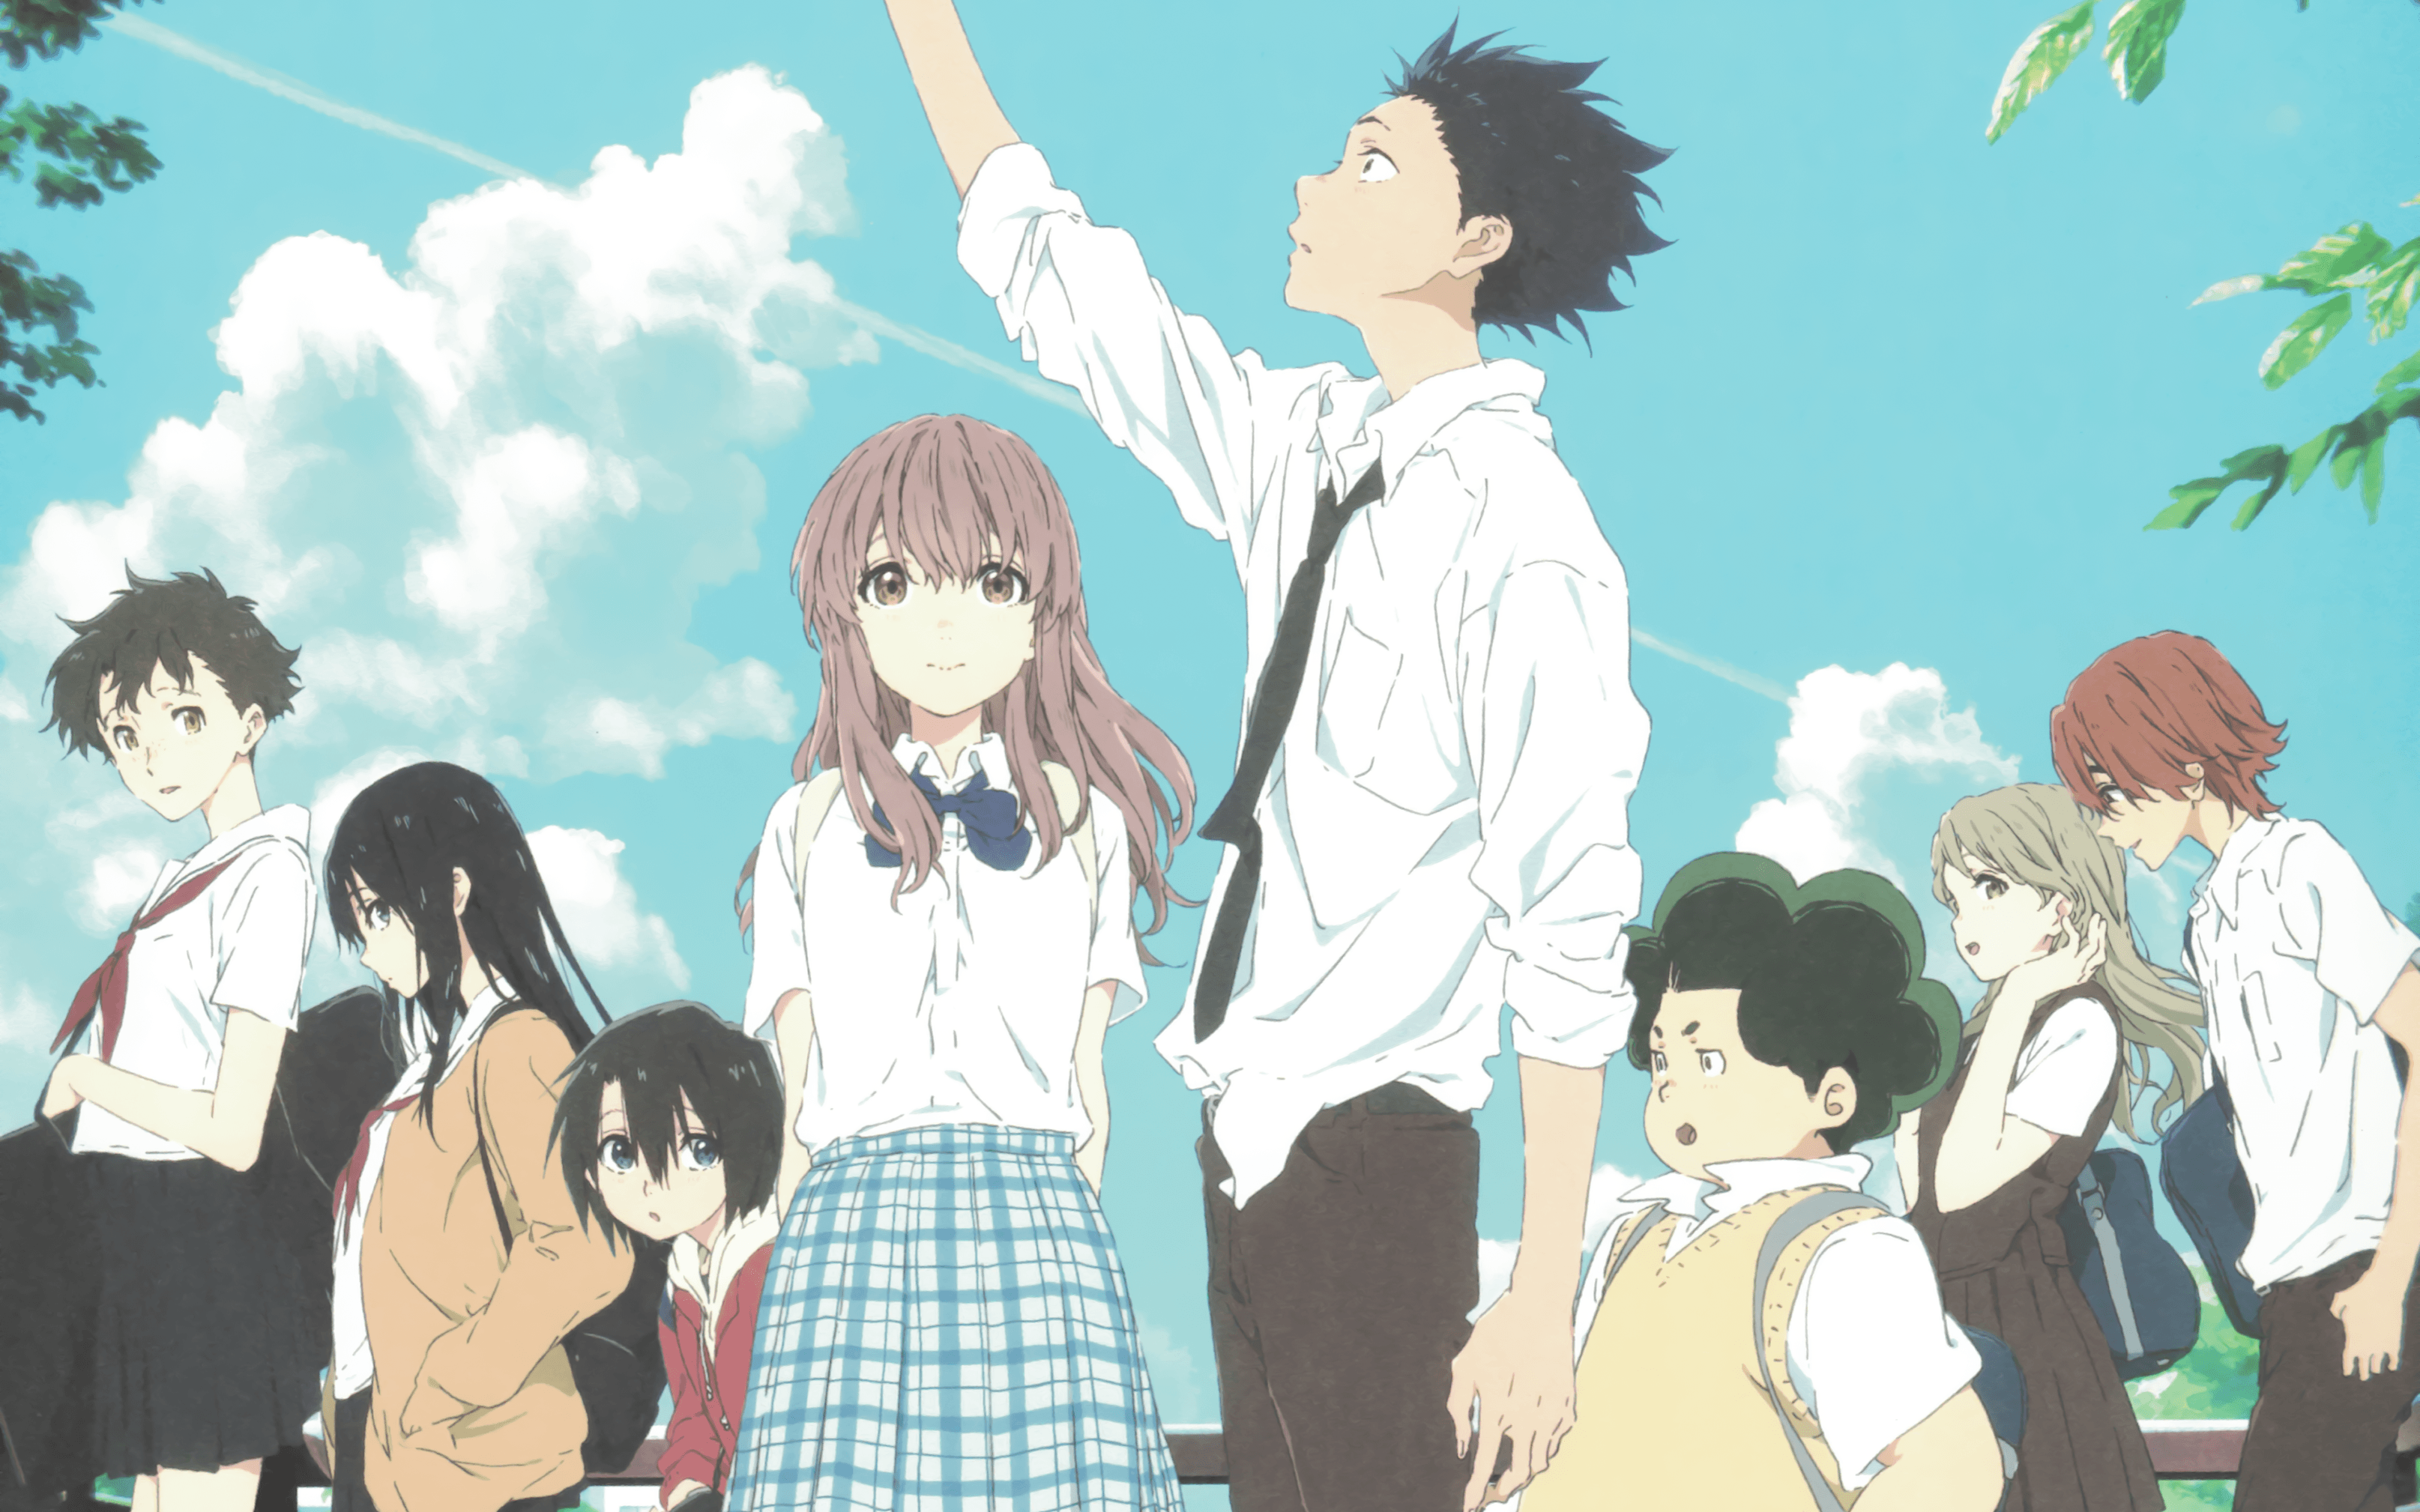 A Silent Voice Limited Edition Wallpapers - Wallpaper Cave